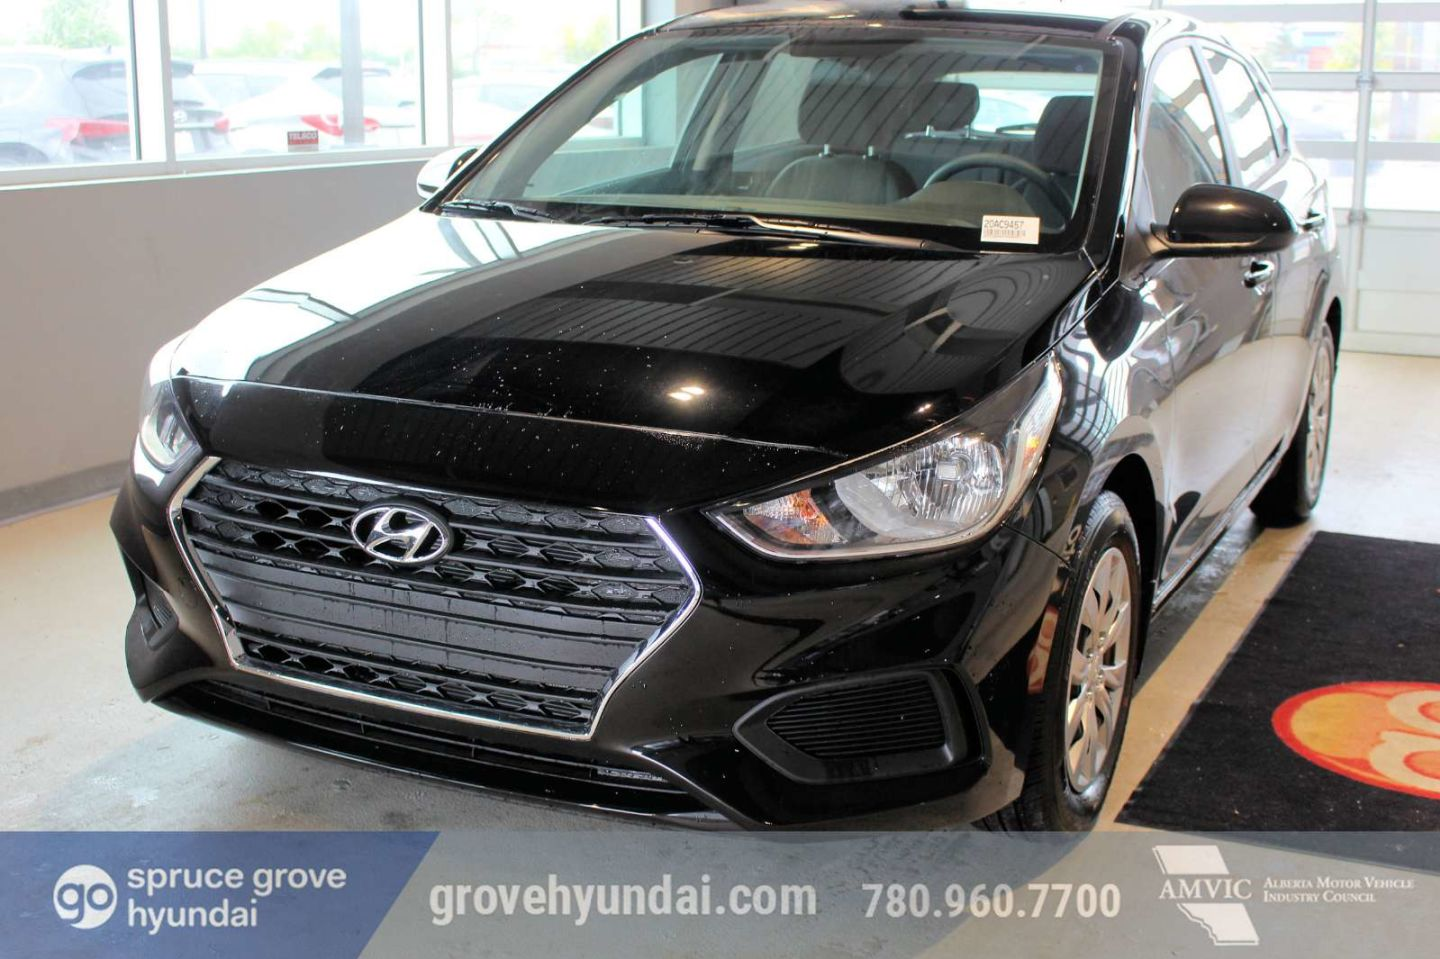 2020 Hyundai Accent Essential for sale in Spruce Grove, Alberta